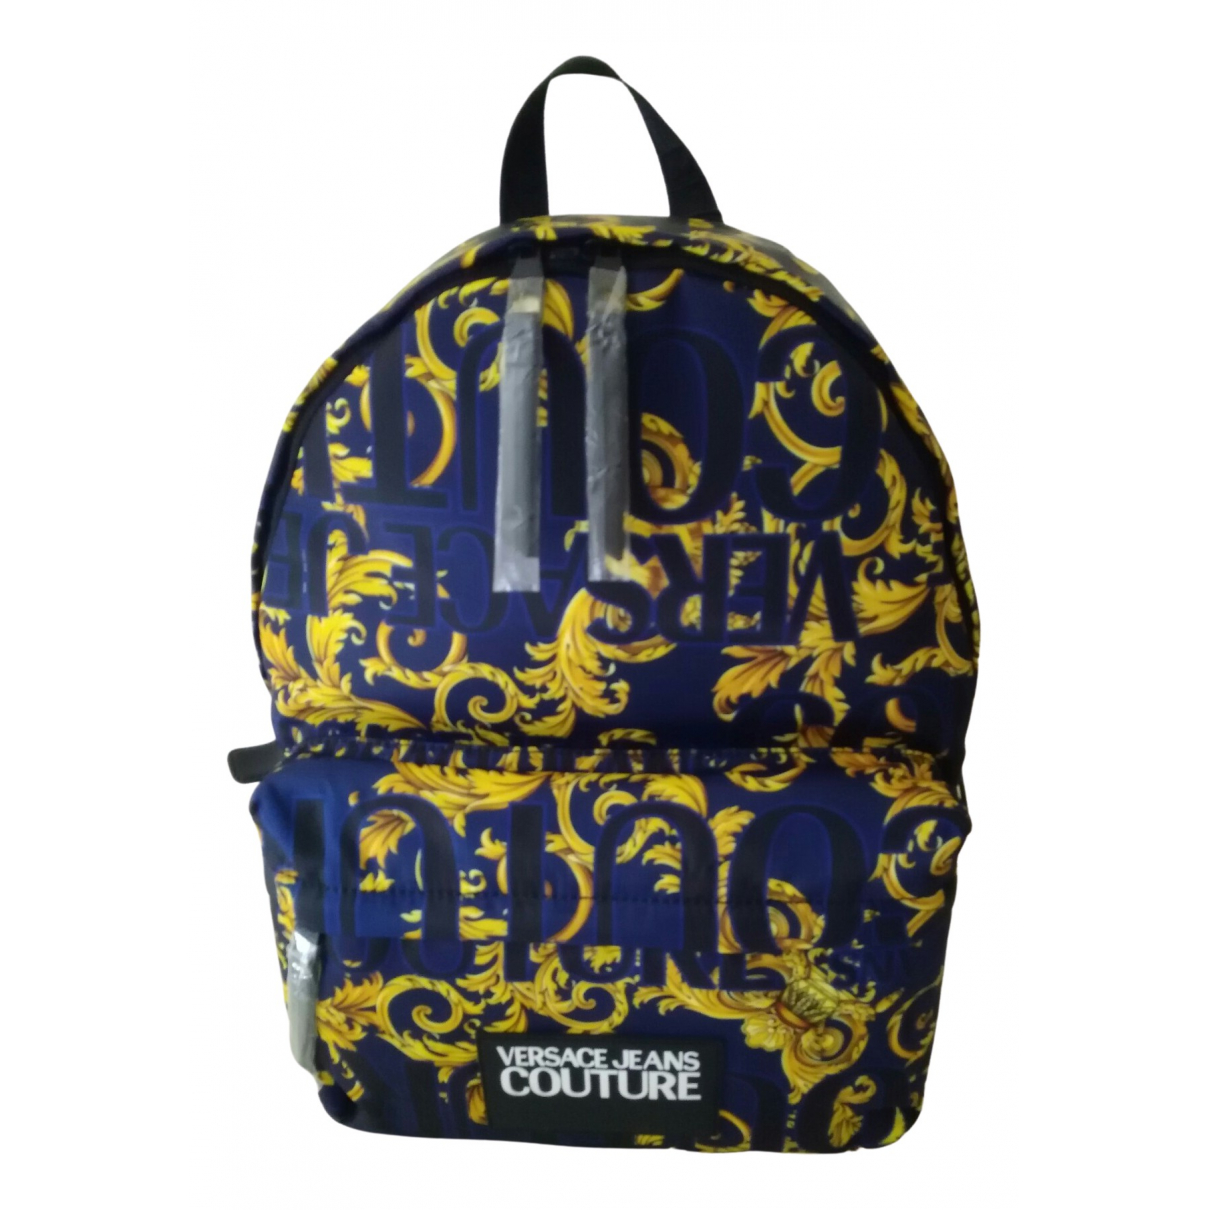 Versace Jeans \N Blue backpack for Women \N